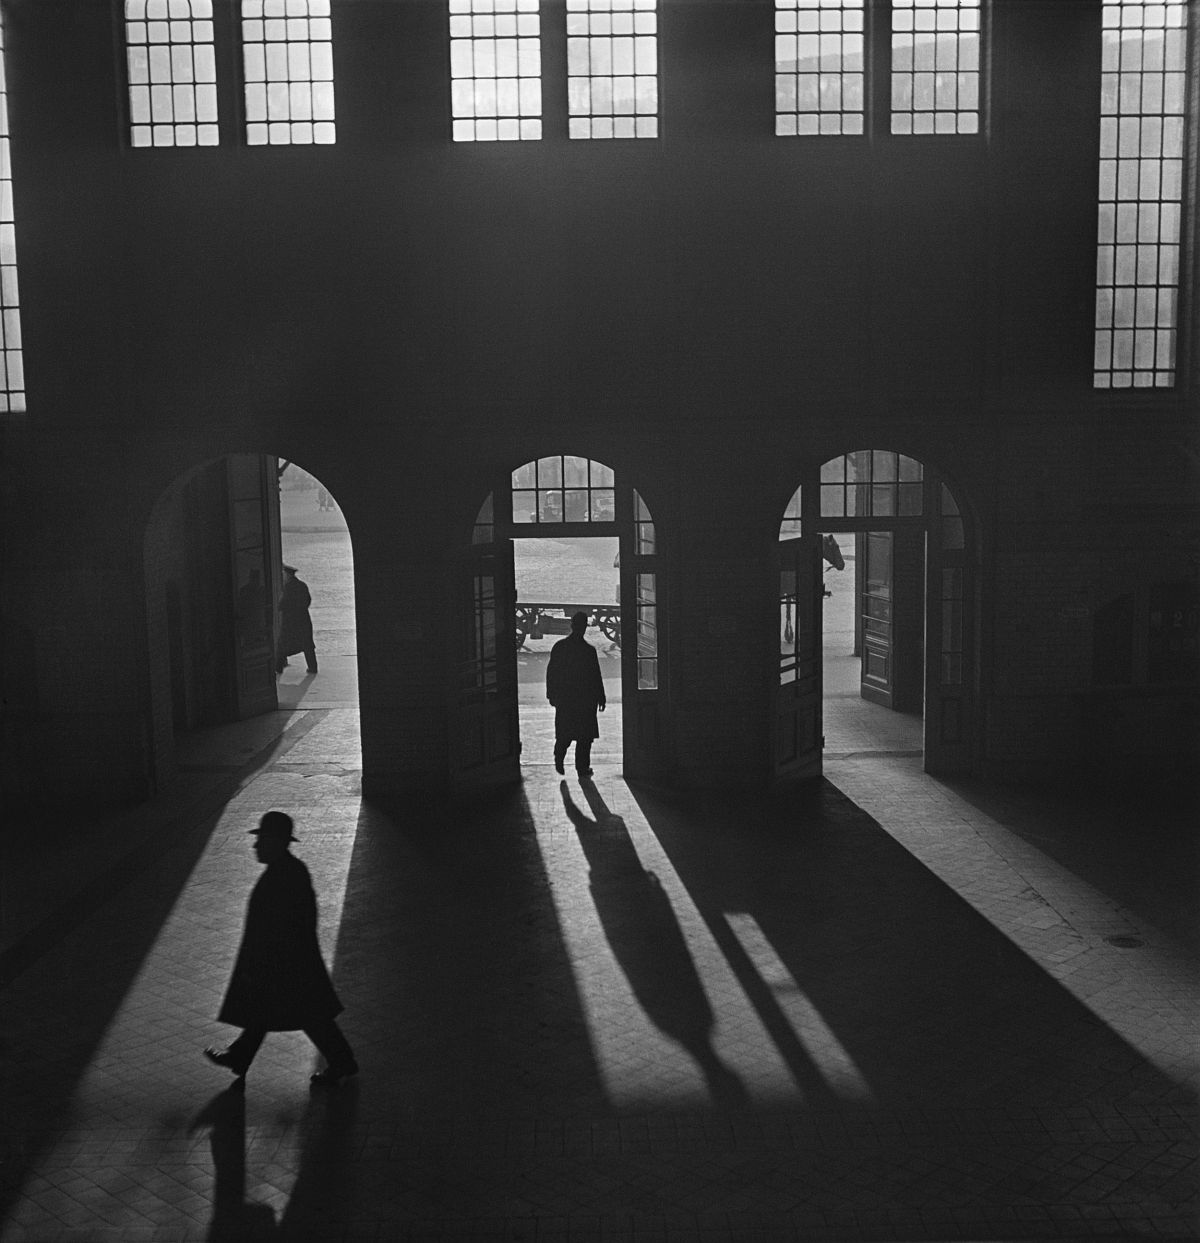 Roman Vishniac, [Interior of the Anhalter Bahnhof railway terminus, near Potsdamer Platz, Berlin], late 1920s–early 1930s. © Mara Vishniac Kohn. Courtesy International Center of Photography.